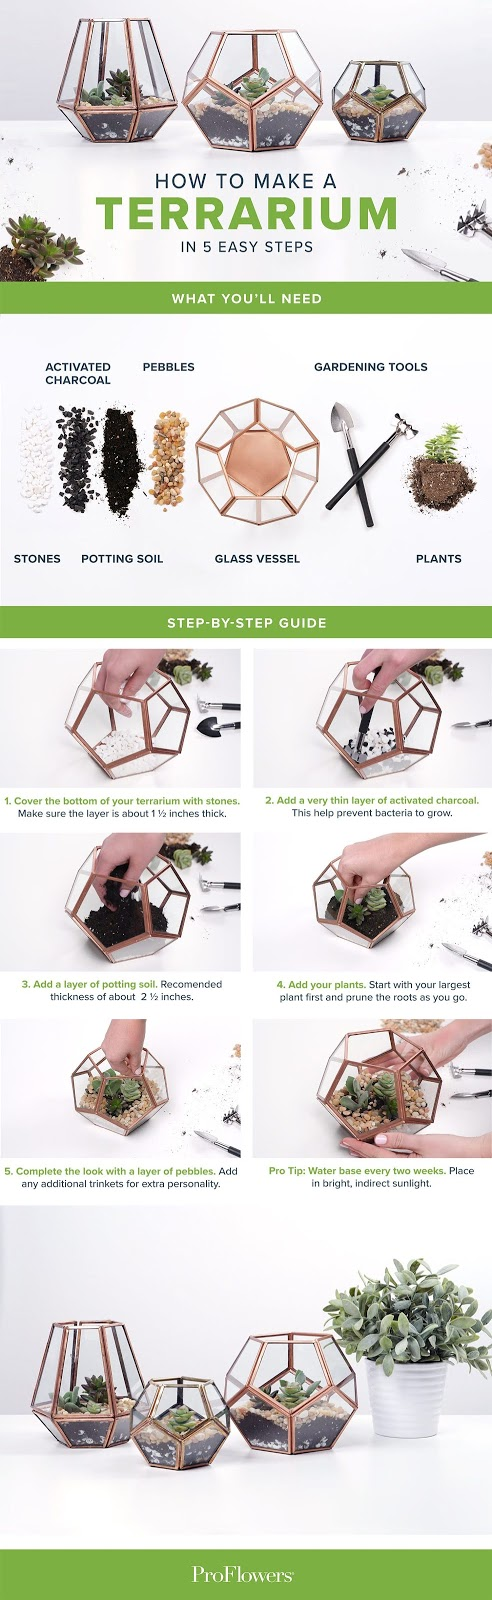 5 Best Steps How to Make a Terrarium for Beginners You Need to Know